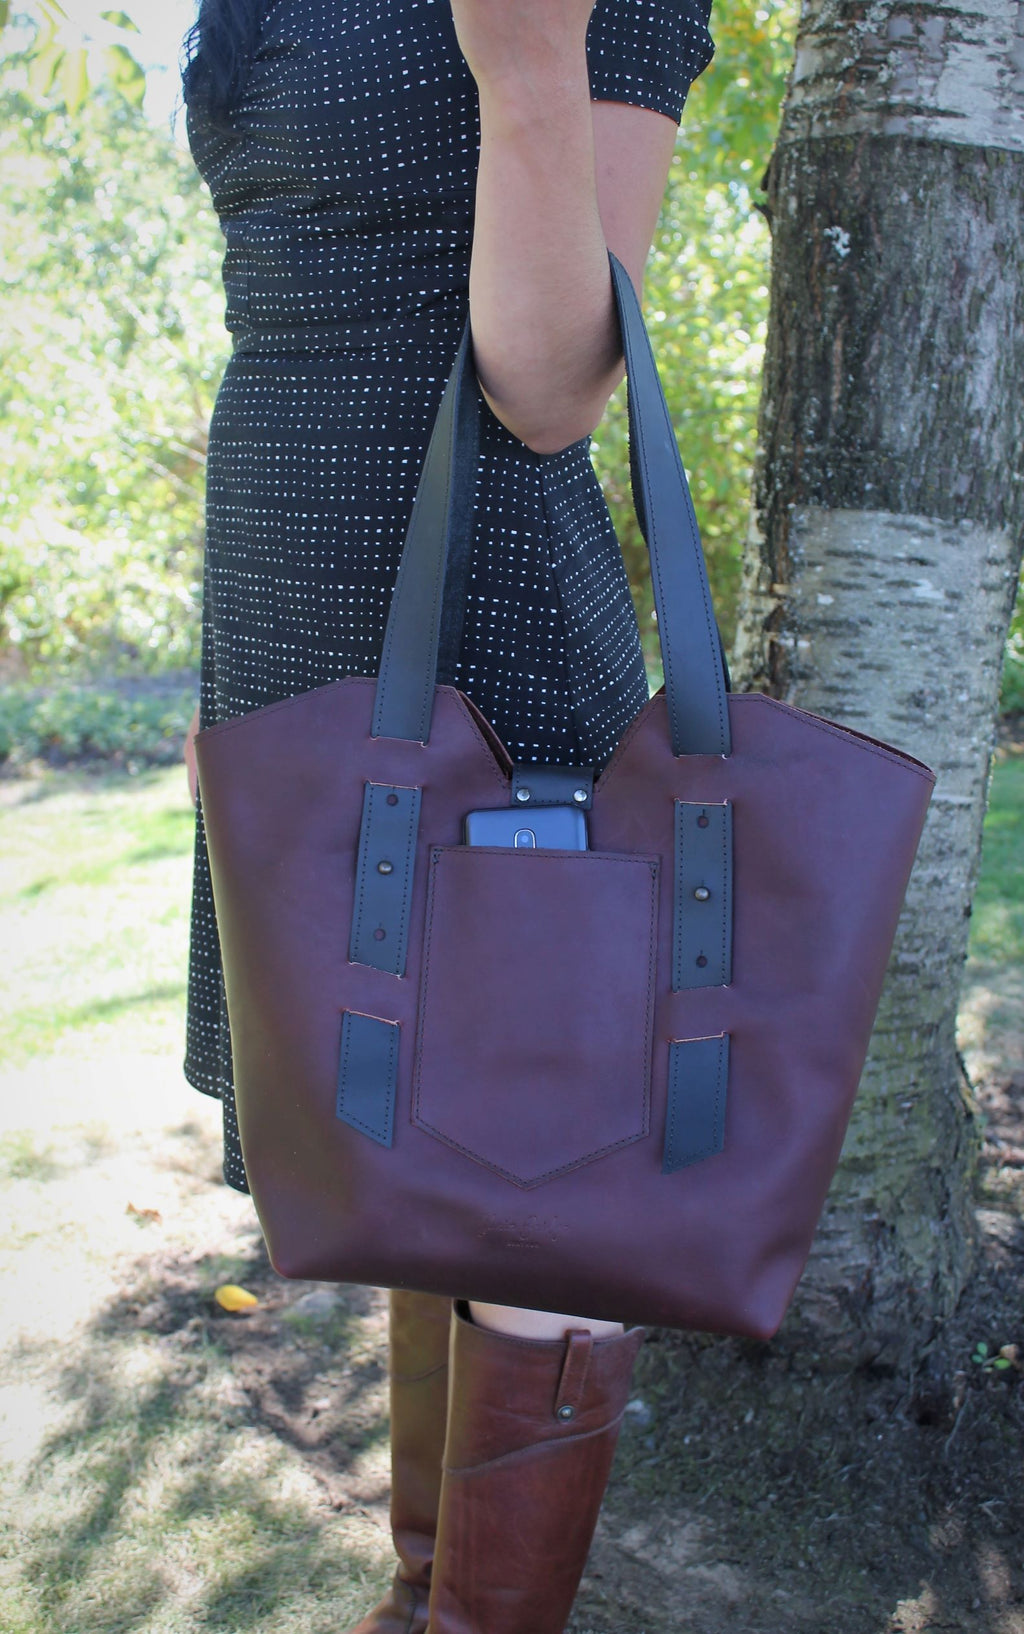 Leather Tote Bags: Handcrafted Burgundy Leather Large Tote Bag